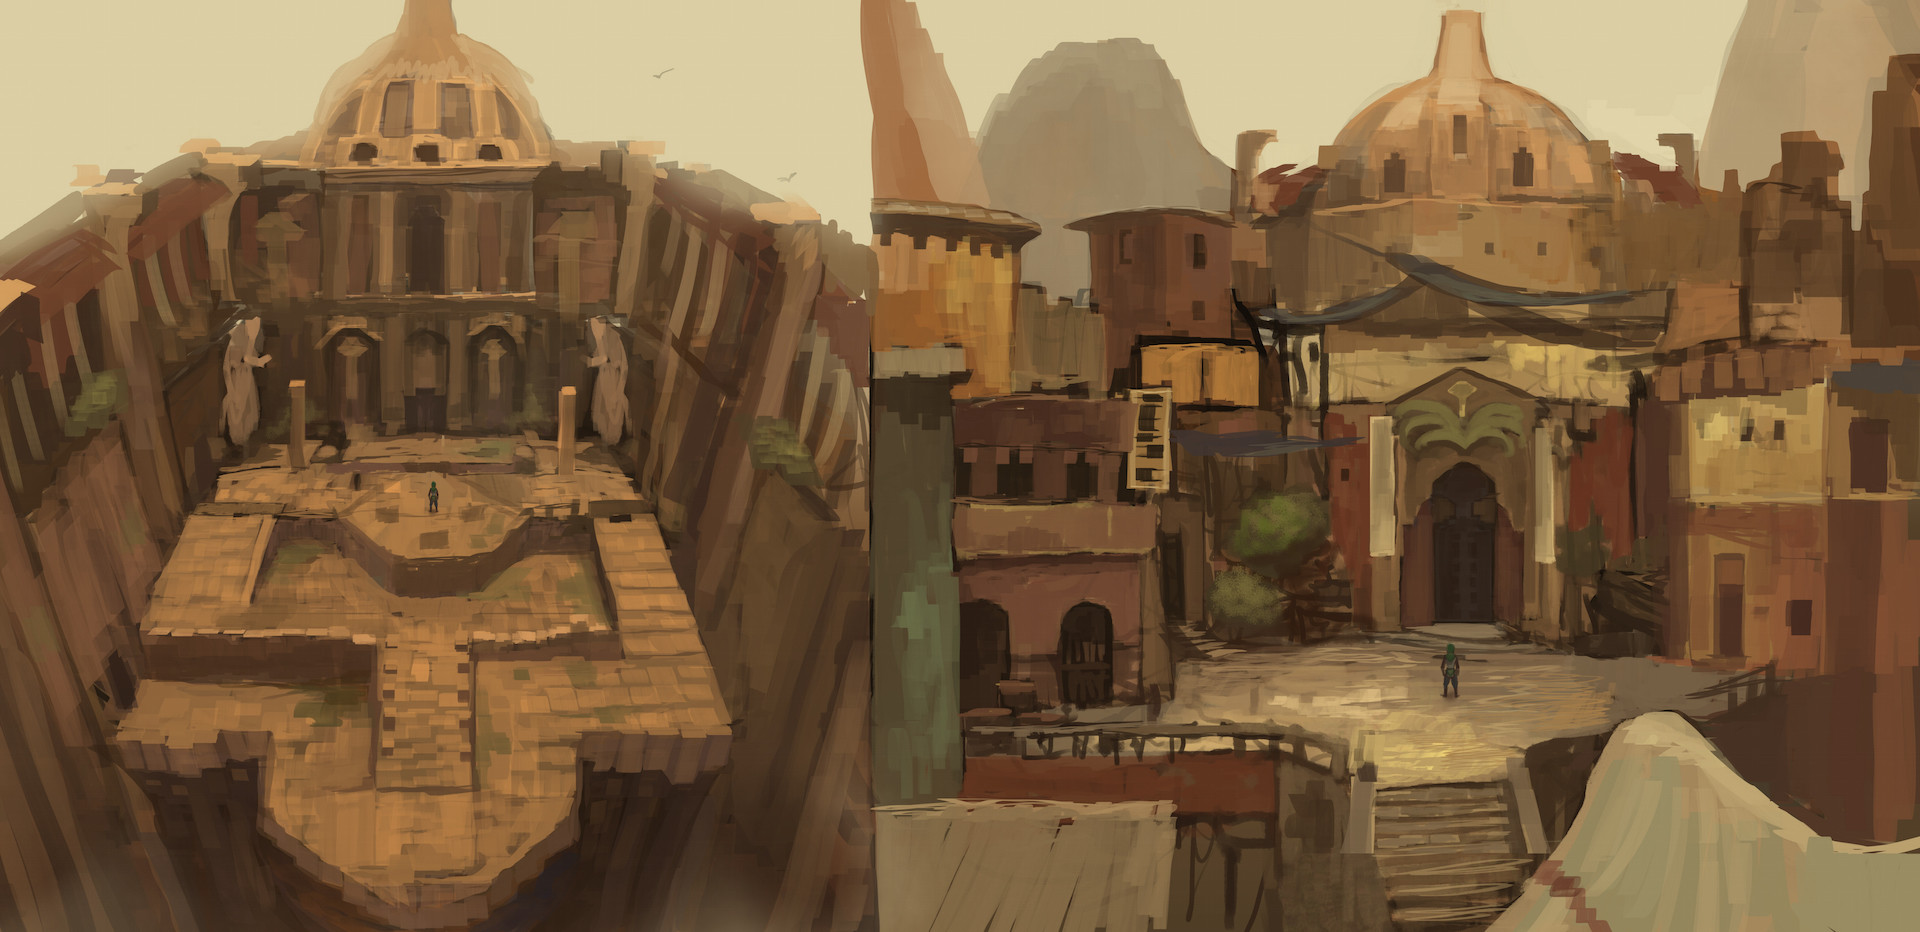 Concept for the Zaber combat arena interior and exterior.